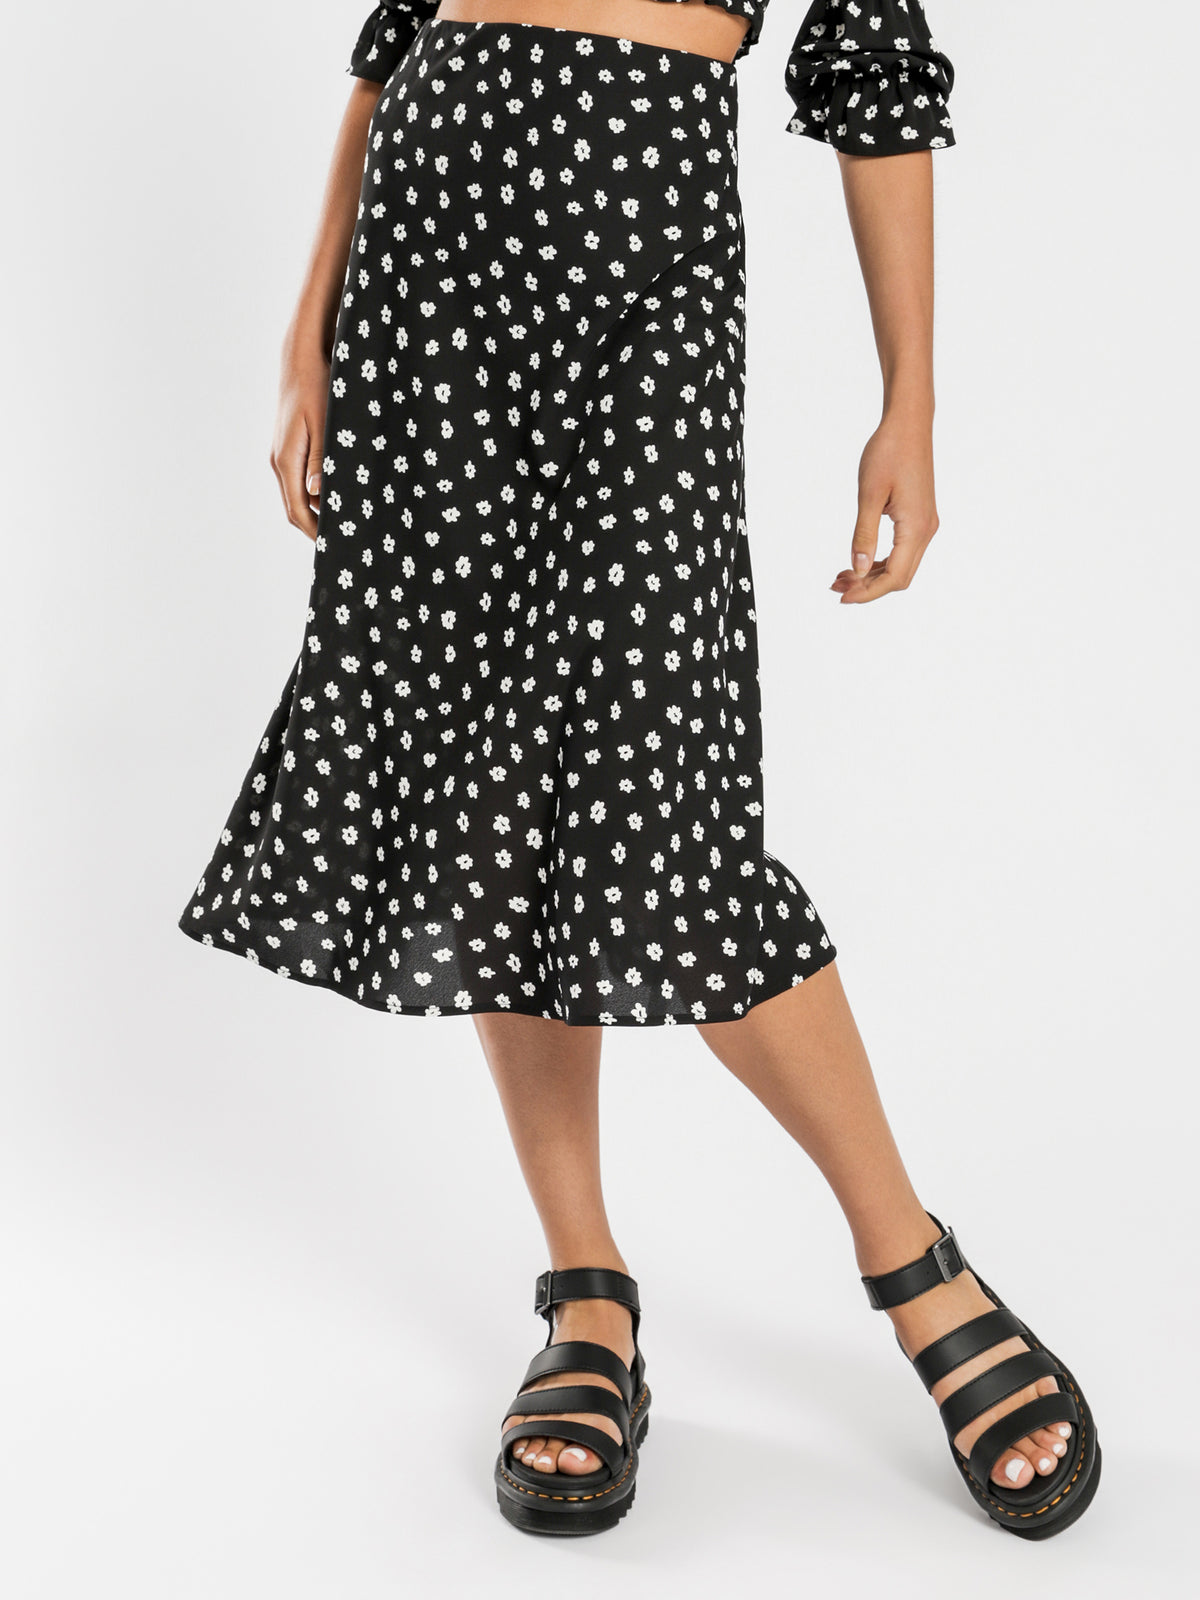 Nova Midi Skirt in Black & White Floral